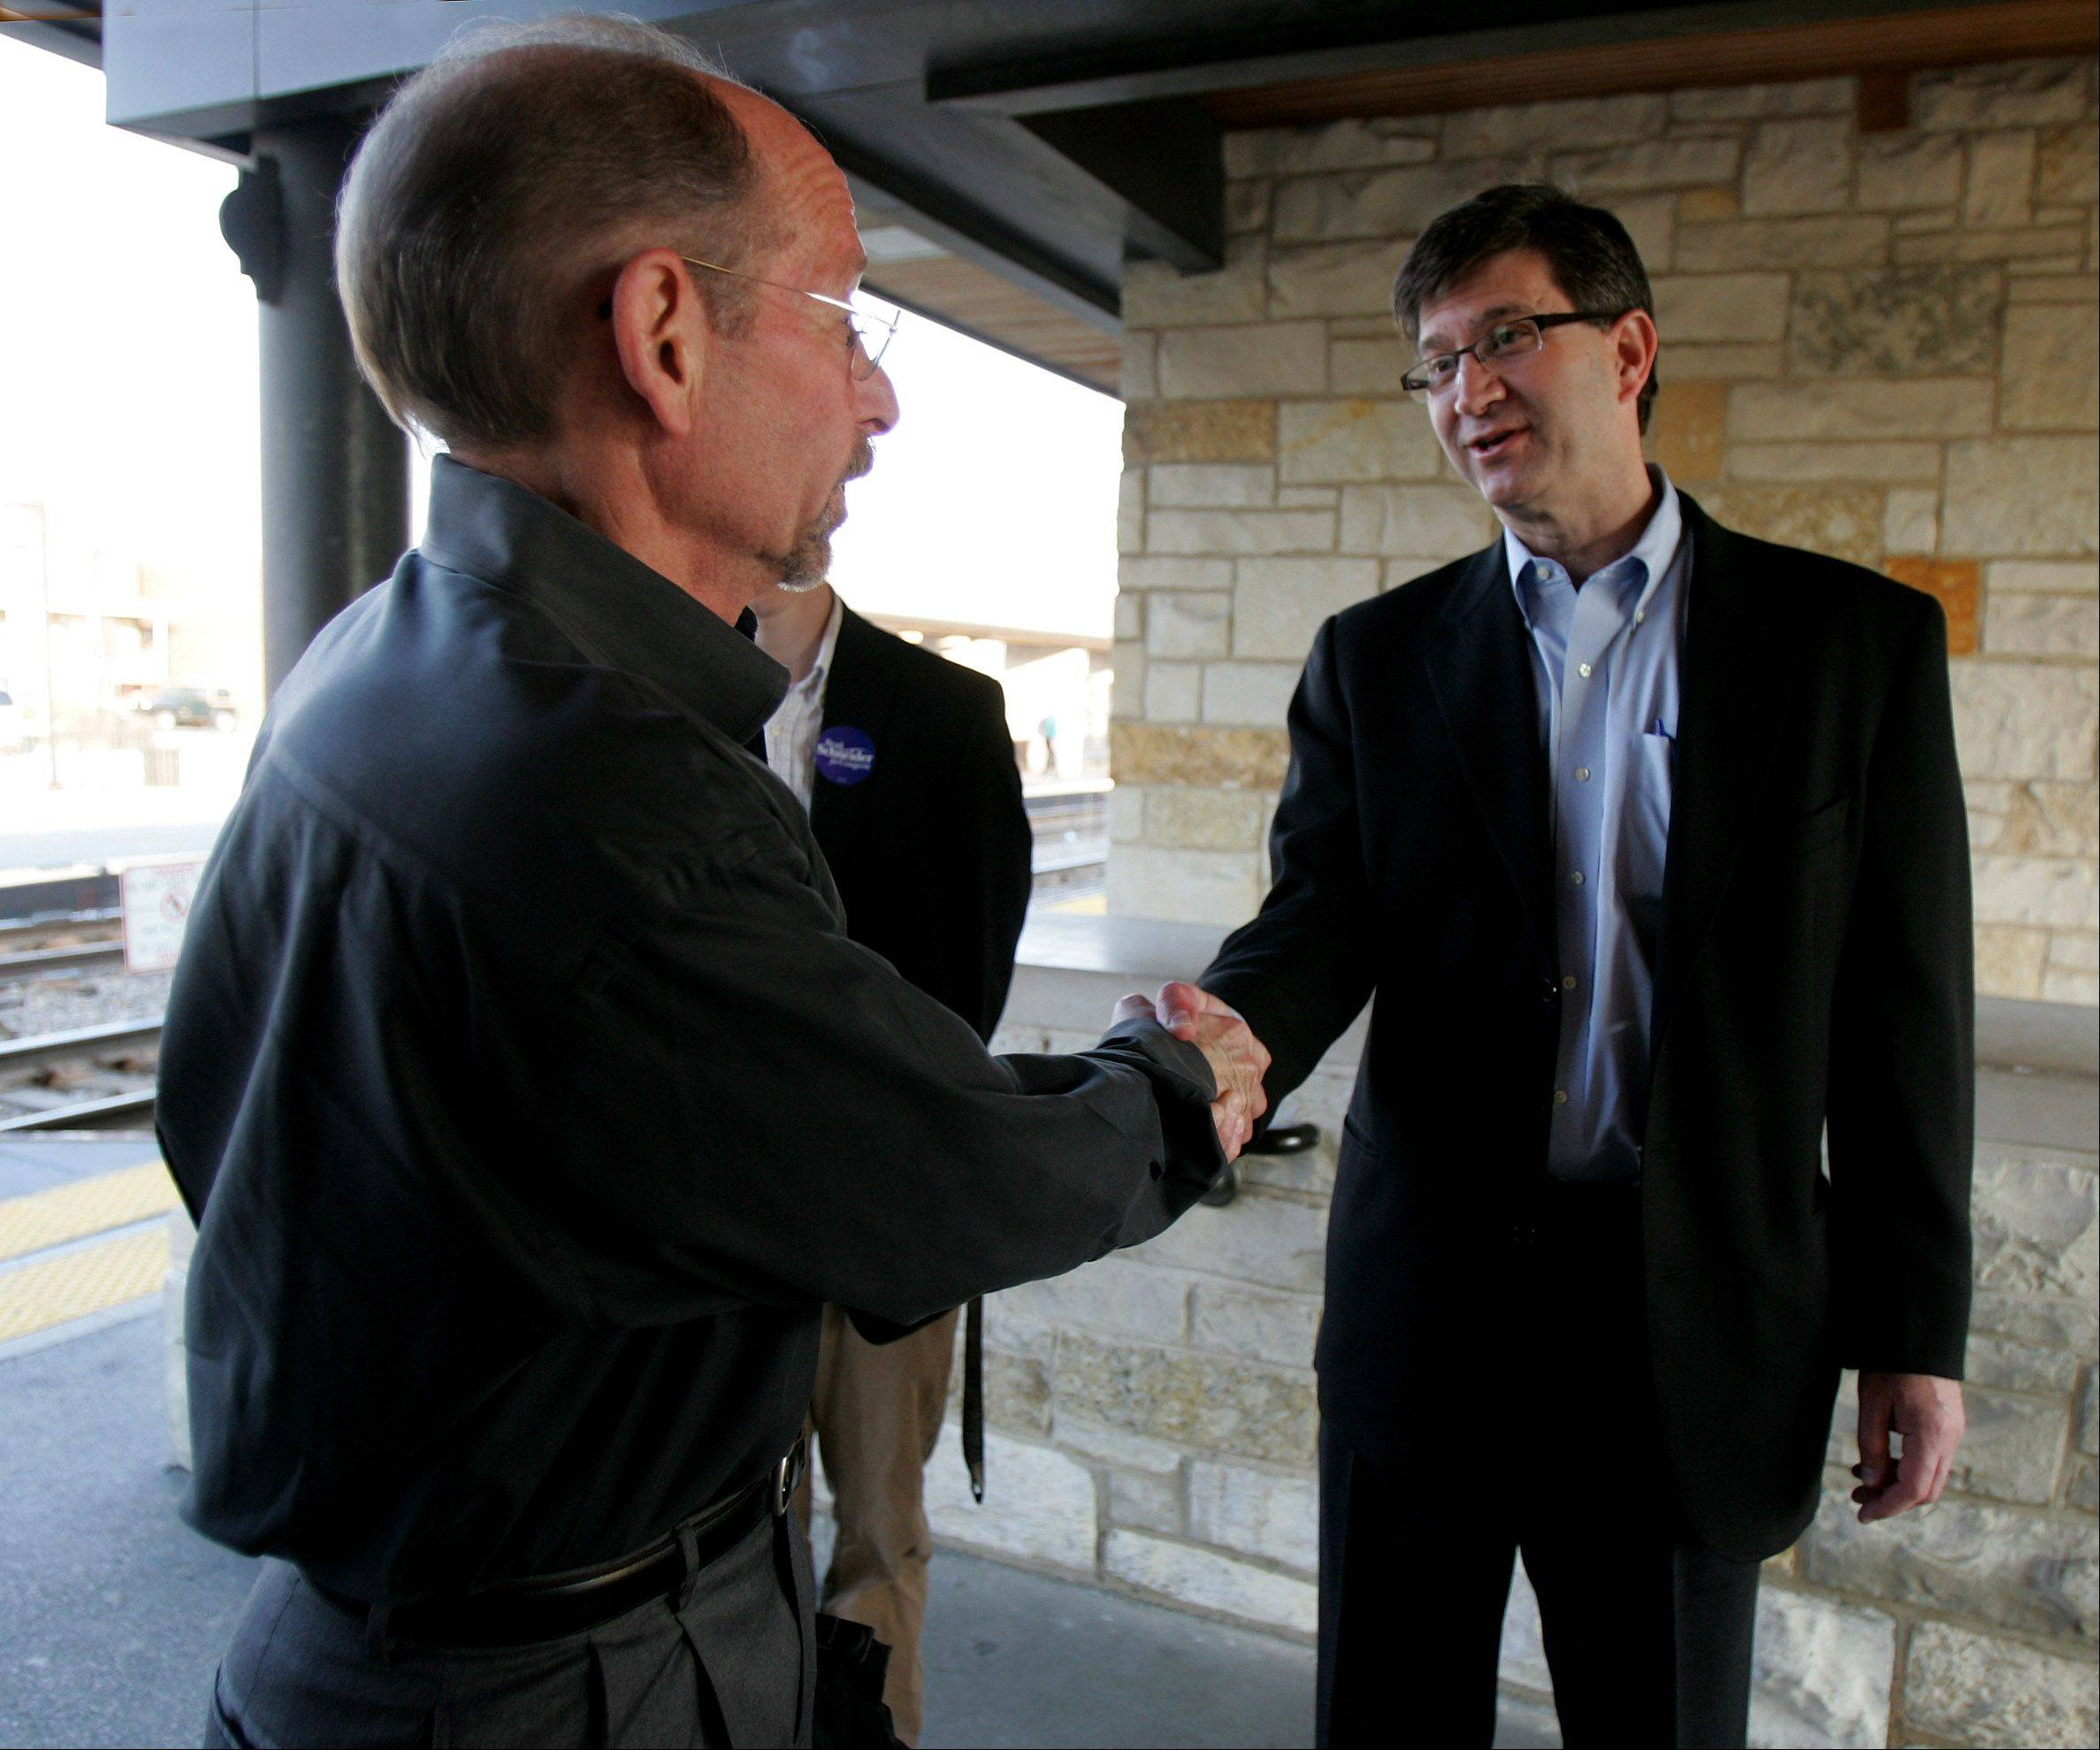 Tenth Congressional District candidate Brad Schneider, right, shakes hands with commuter Stephen Marcus. Schneider, of Deerfield, greeted commuters at the Highland Park train station Wednesday morning, a day after his primary win.